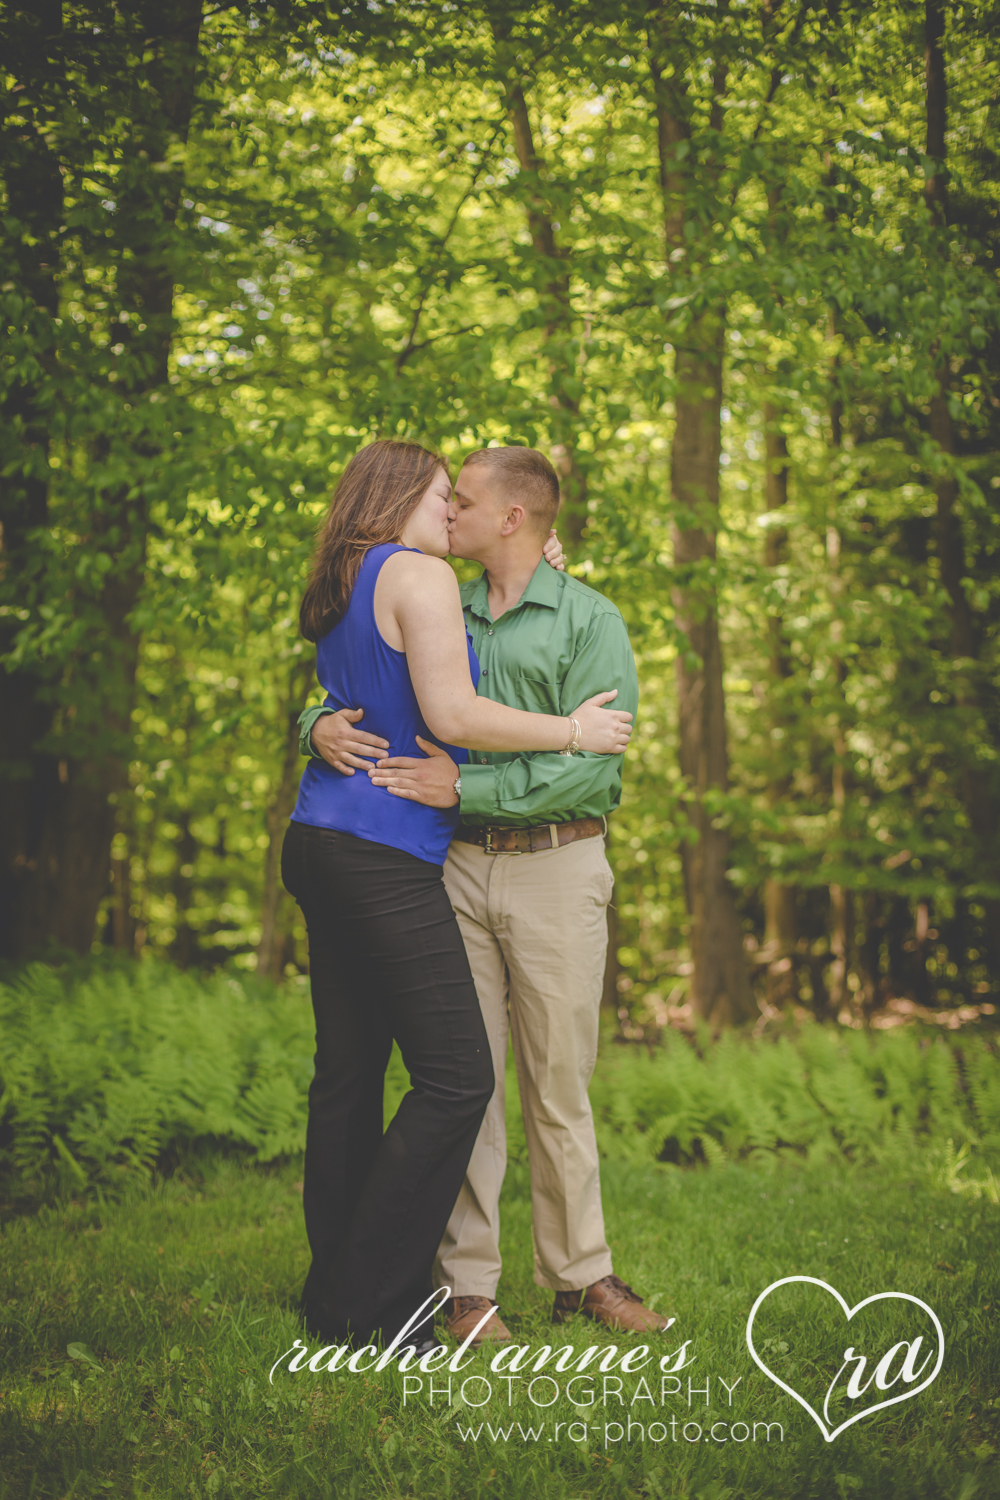 005-ELM-DUBOIS-ENGAGEMENT-PHOTOS.jpg